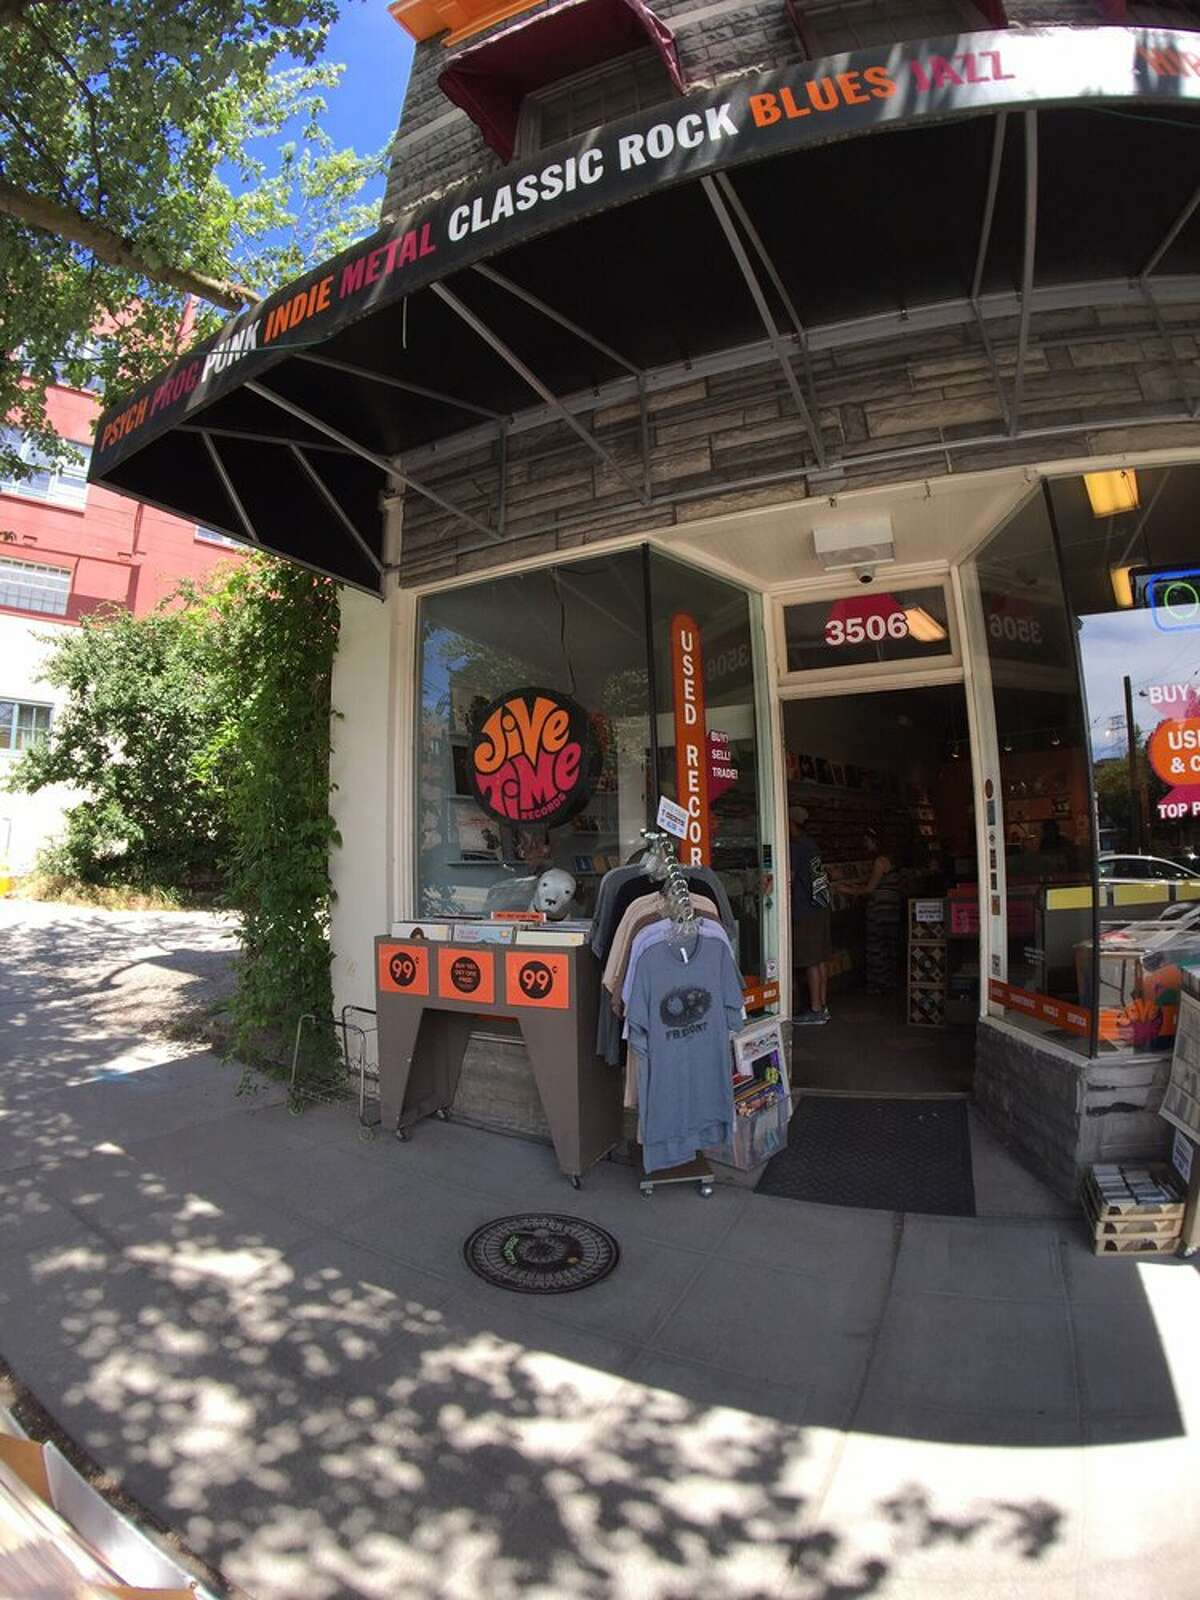 Jive Time Records The groovy front of this store speaks for itself.